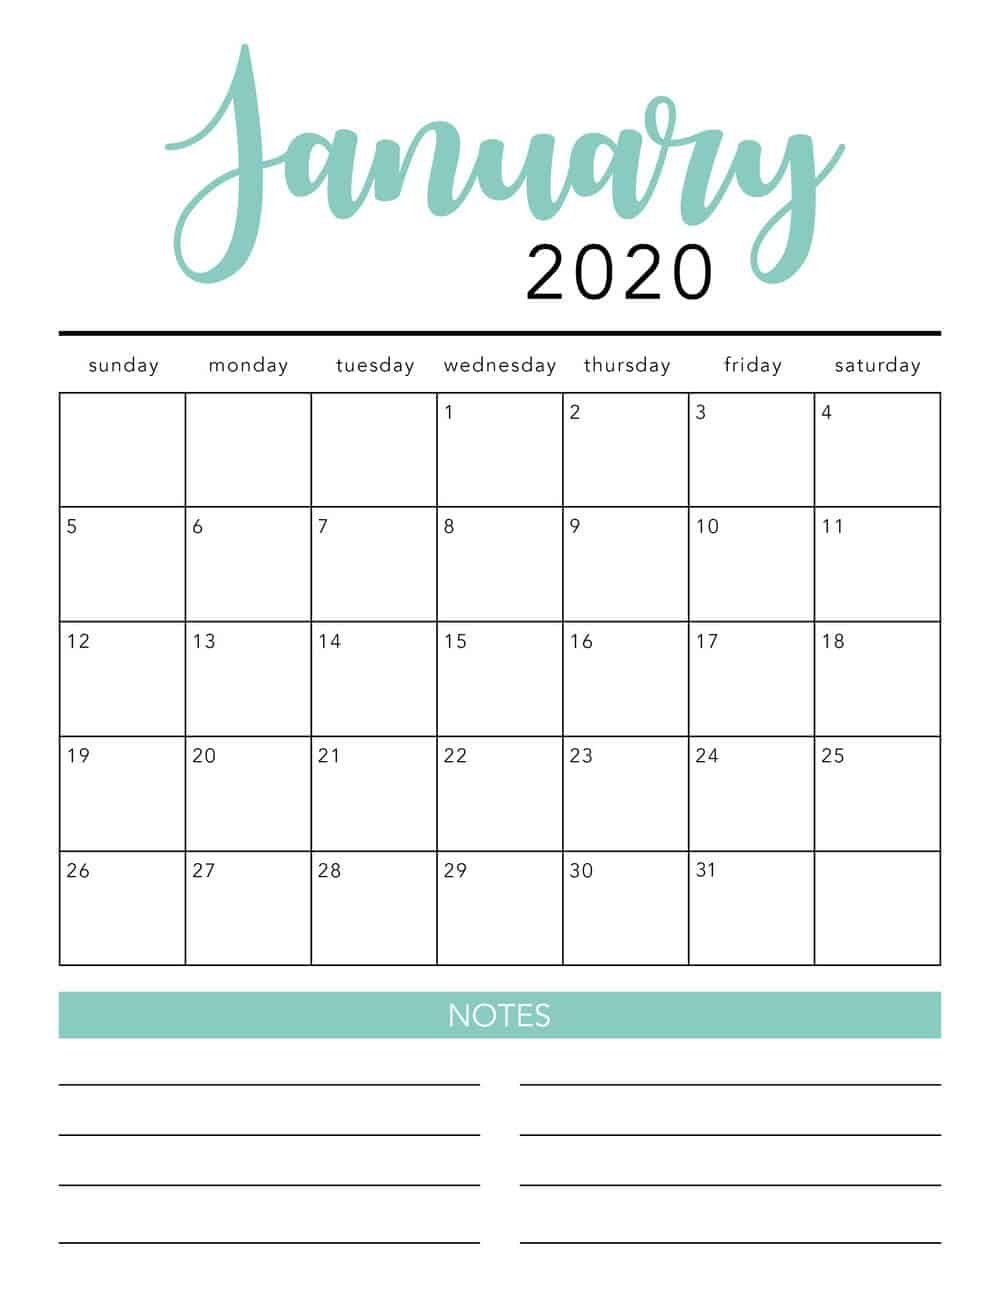 Free 2020 Printable Calendar Template (2 Colors!) - I Free Calendars That I Can Edit And Print